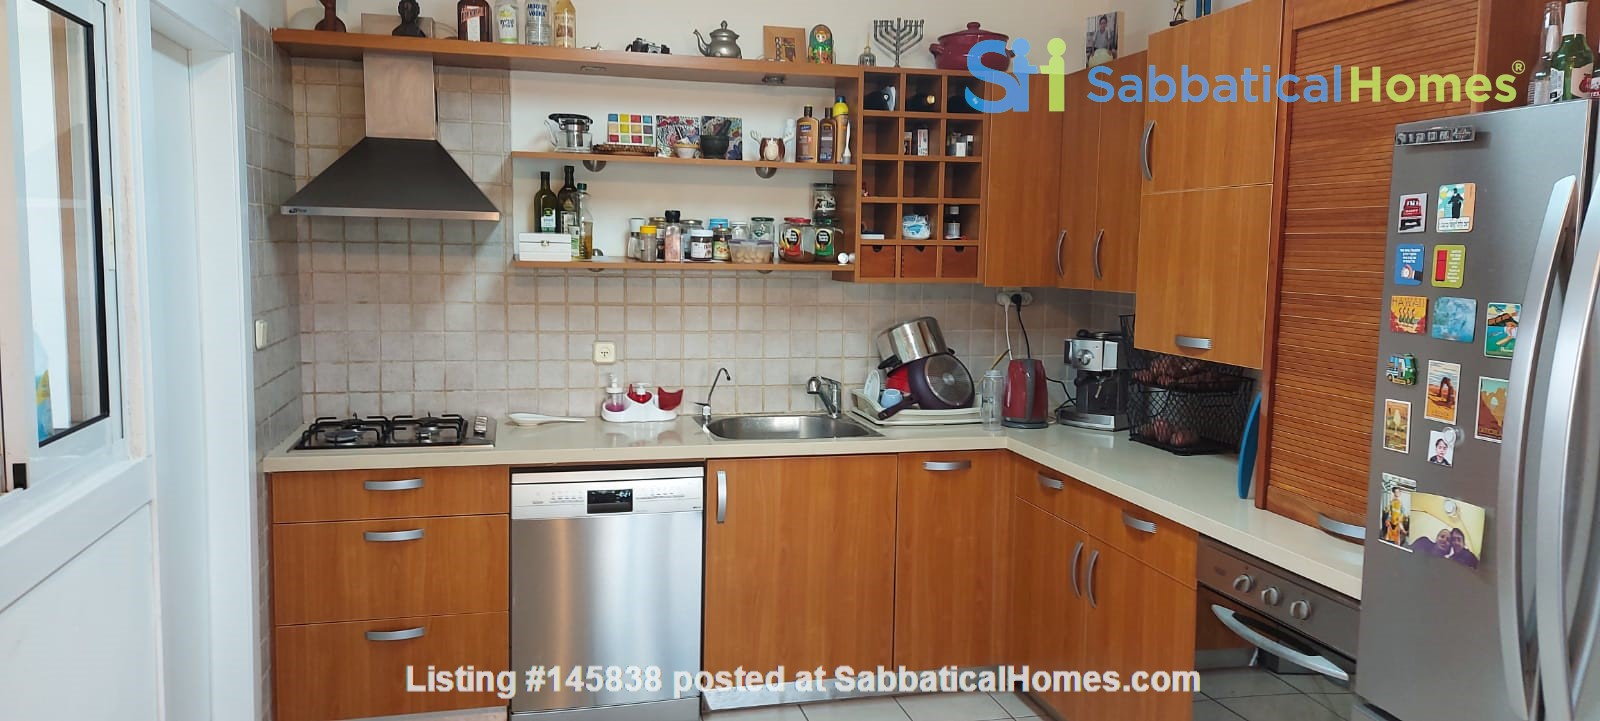 Looking for a two-bedrooms apartment in Paris Home Exchange in Ness Ziona 4